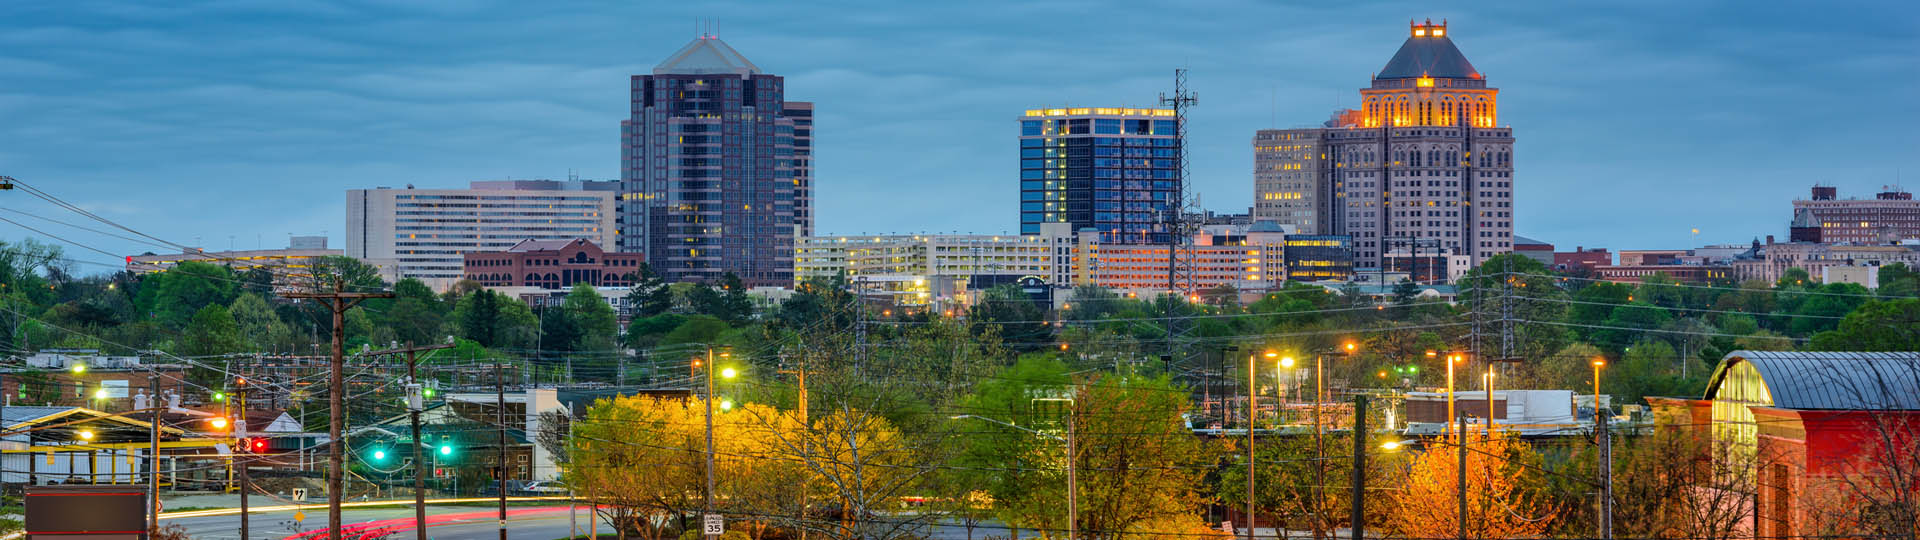 Investors In Greensboro, North Carolina